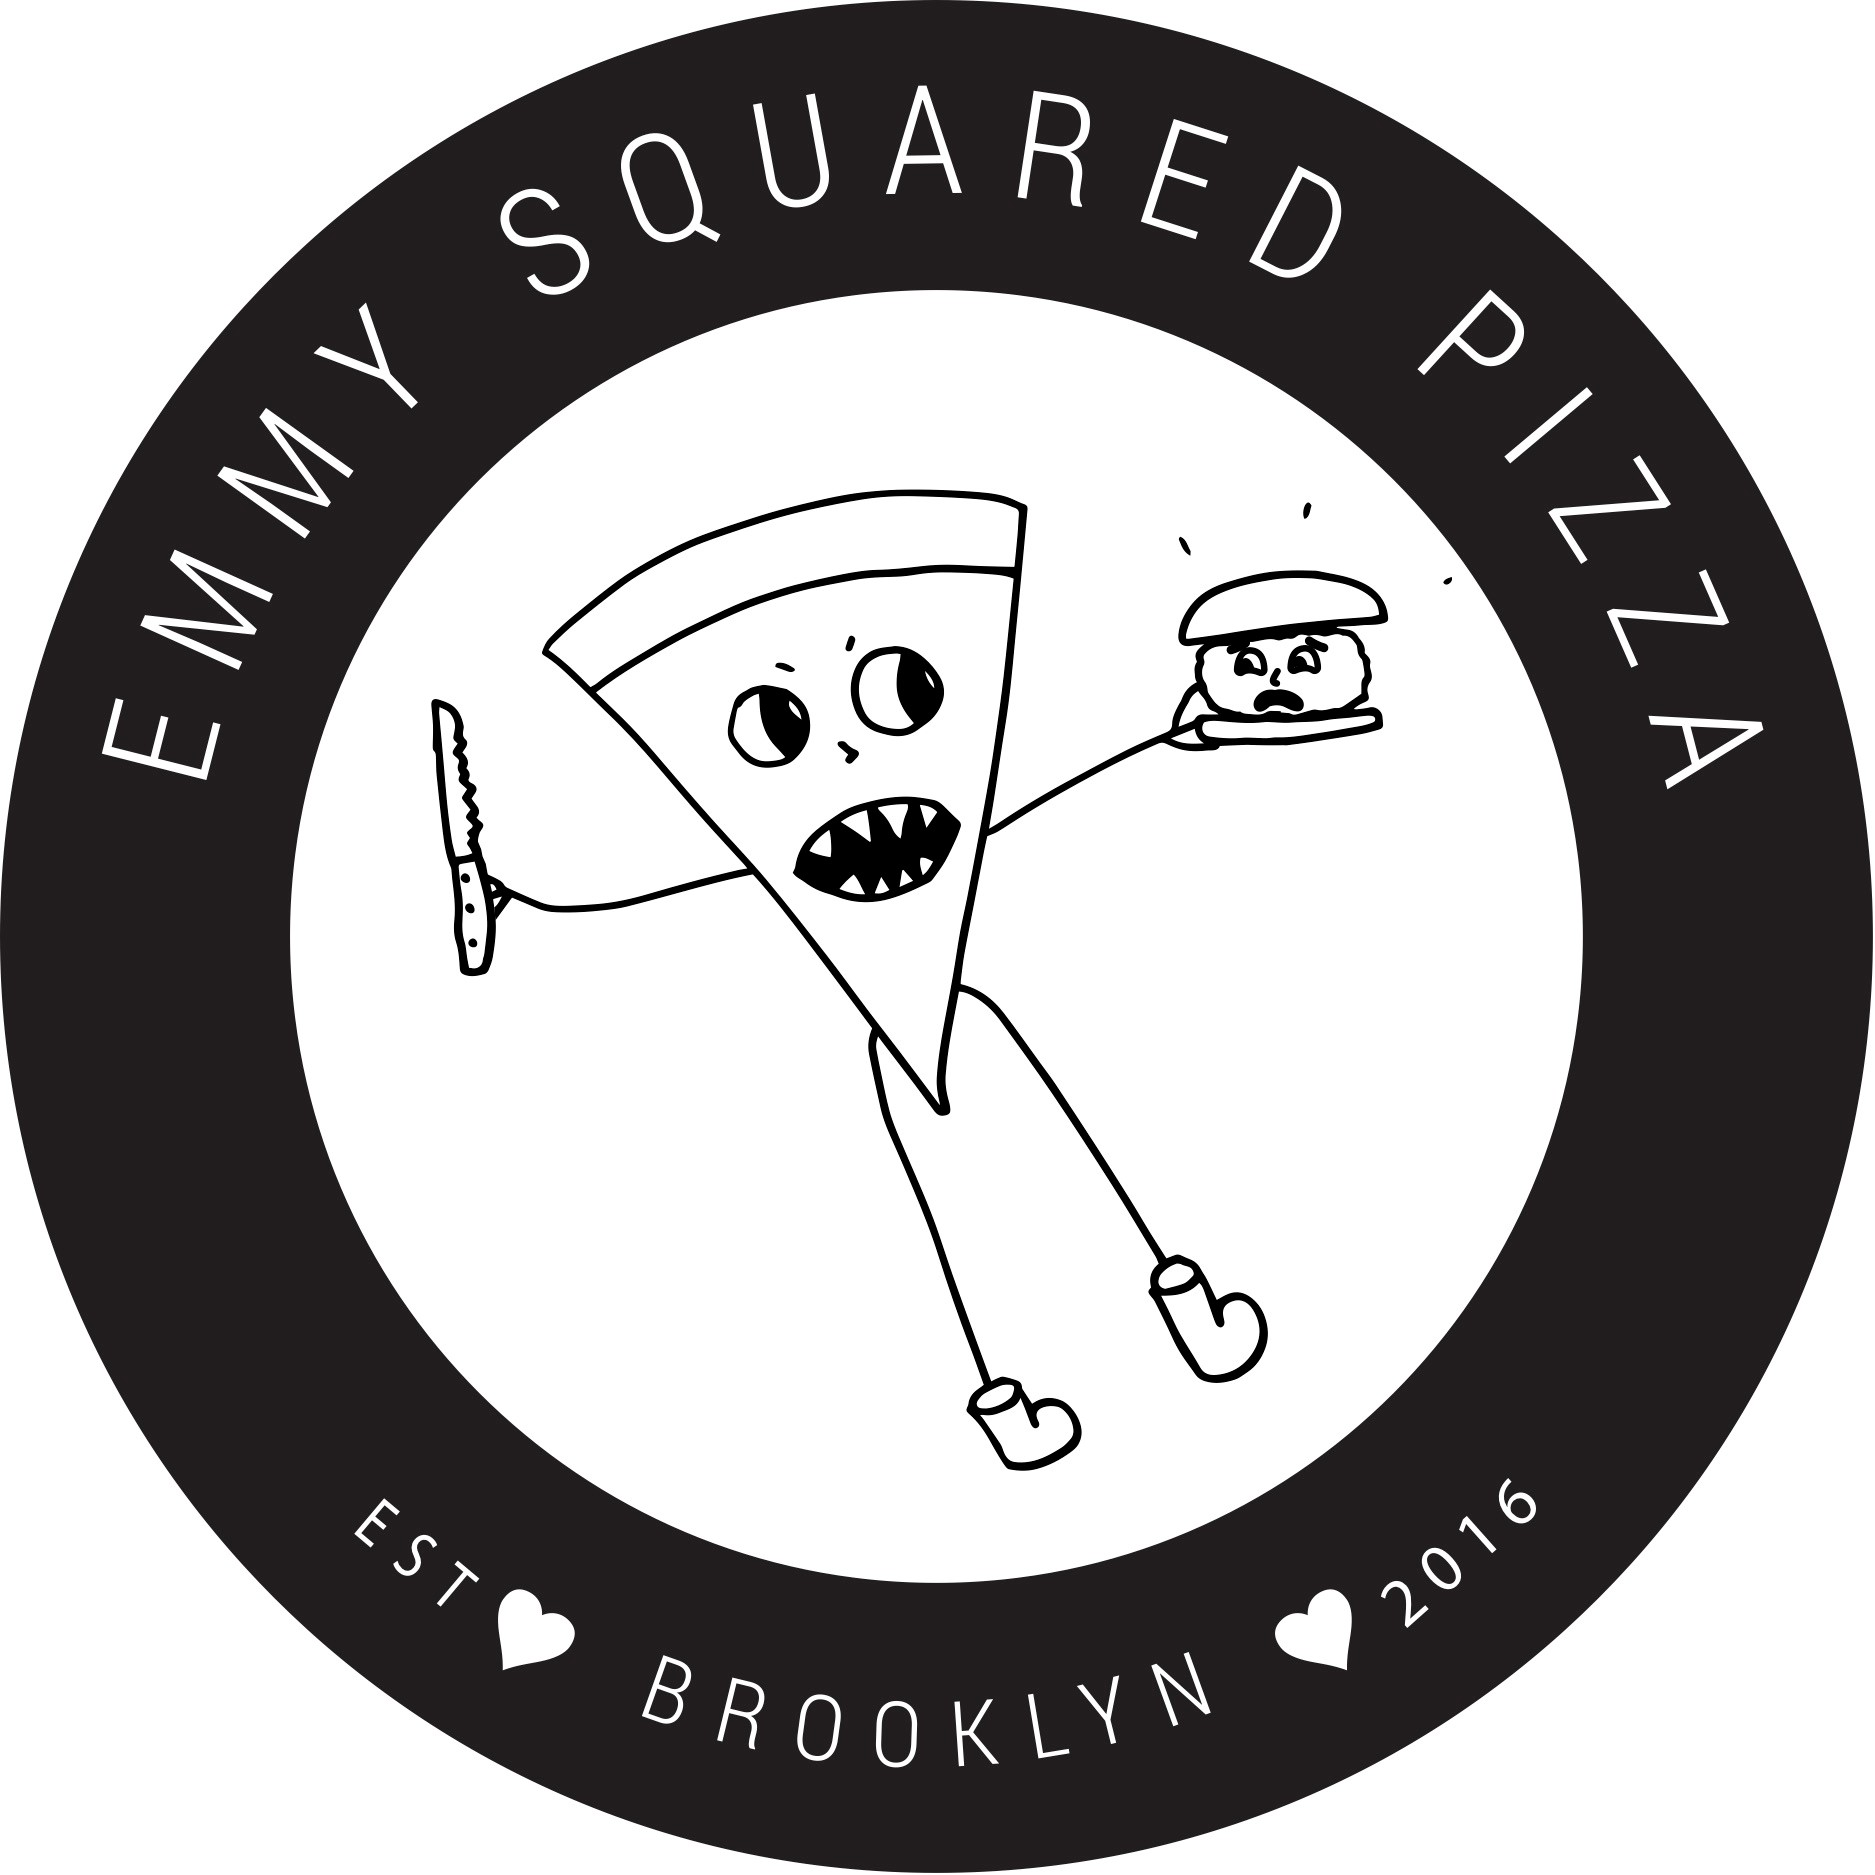 Emmy Squared Pizza